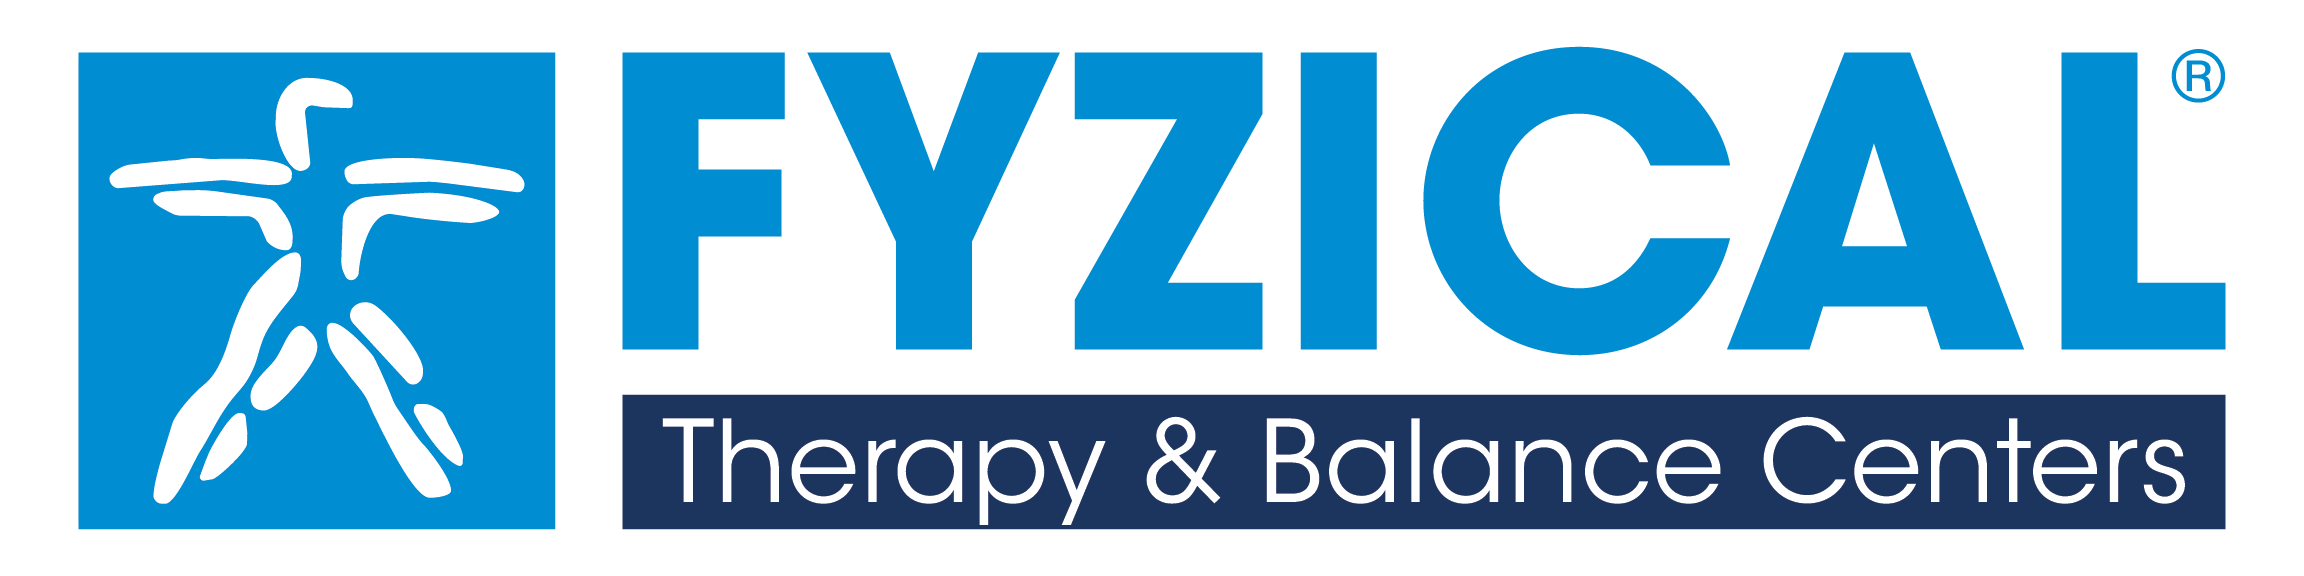 FYZICAL Therapy & Wellness Centers